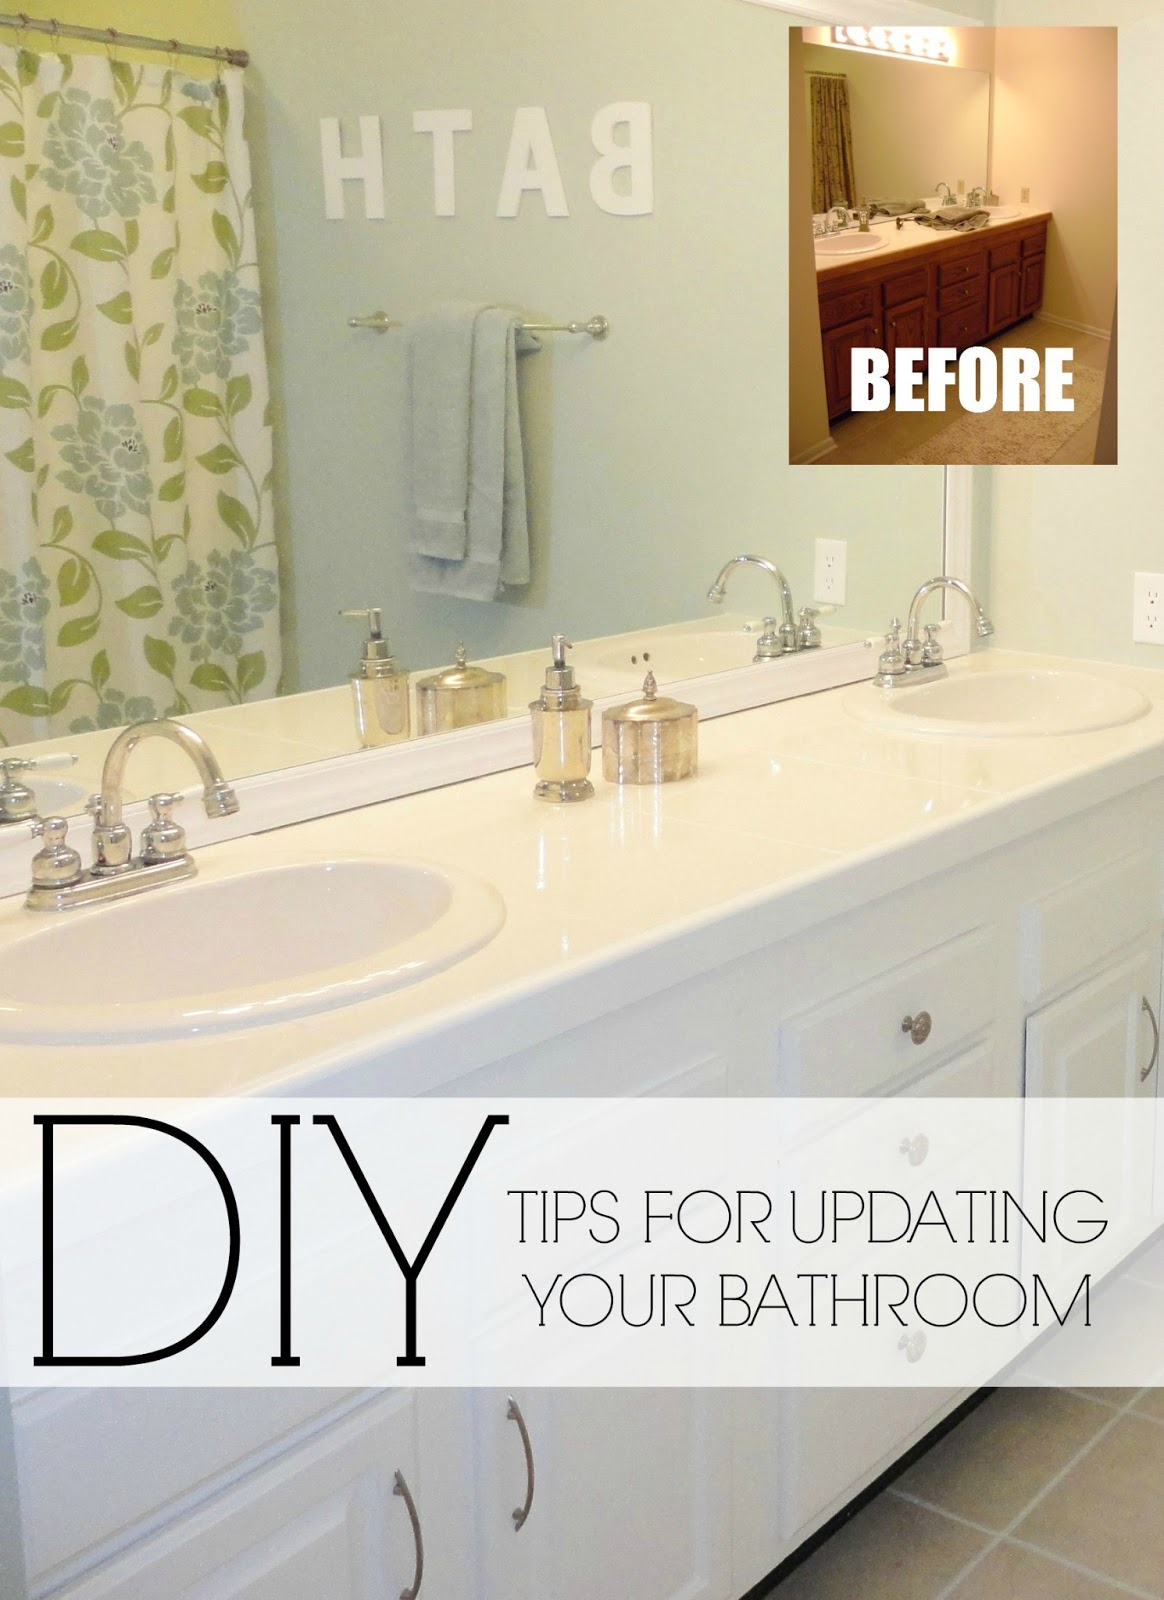 Home design ideas bathroom decorating ideas on a budget for Diy bathroom decor ideas